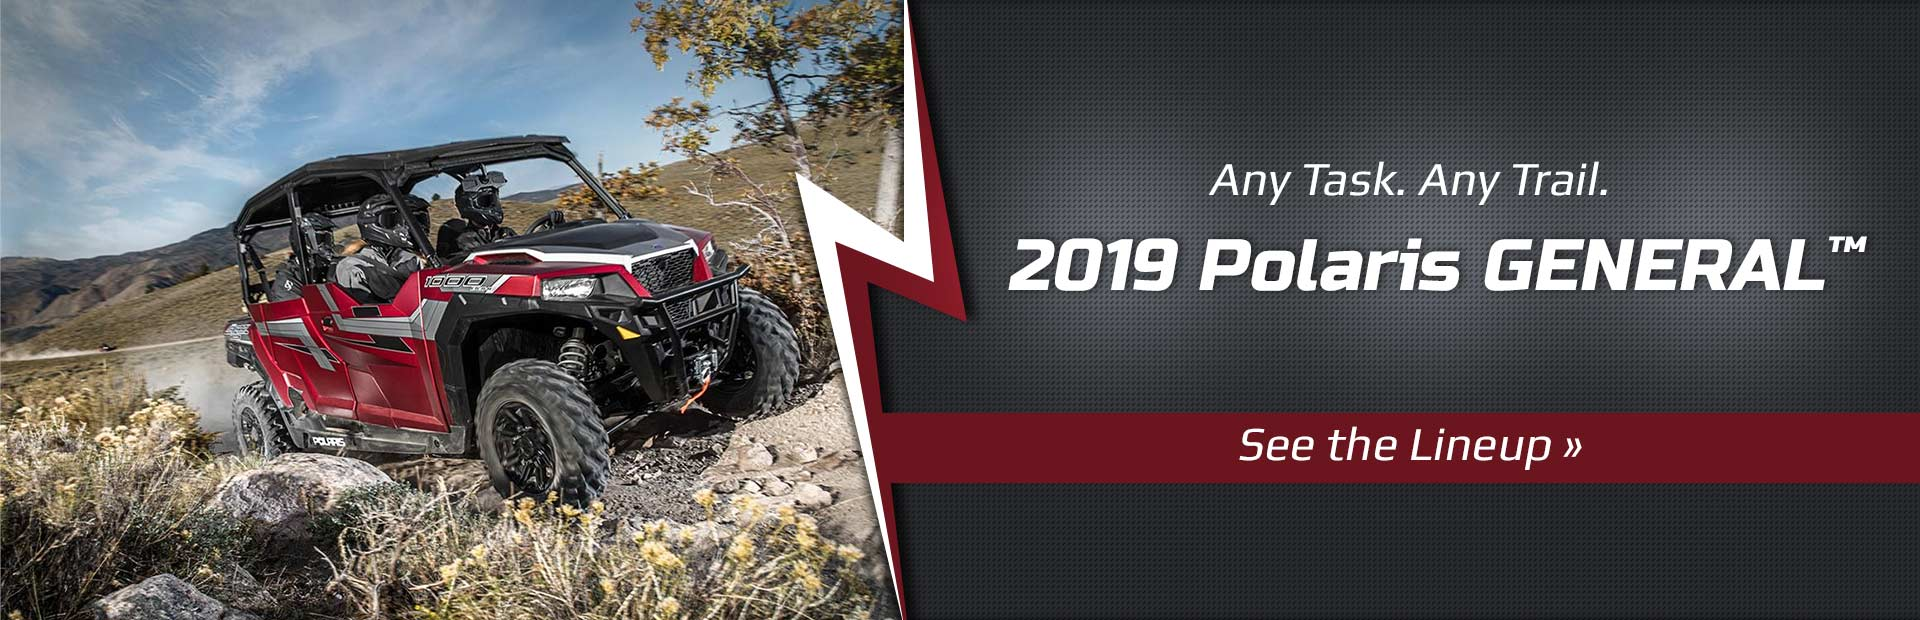 2019 Polaris GENERAL™ Models: Click here to view the models.